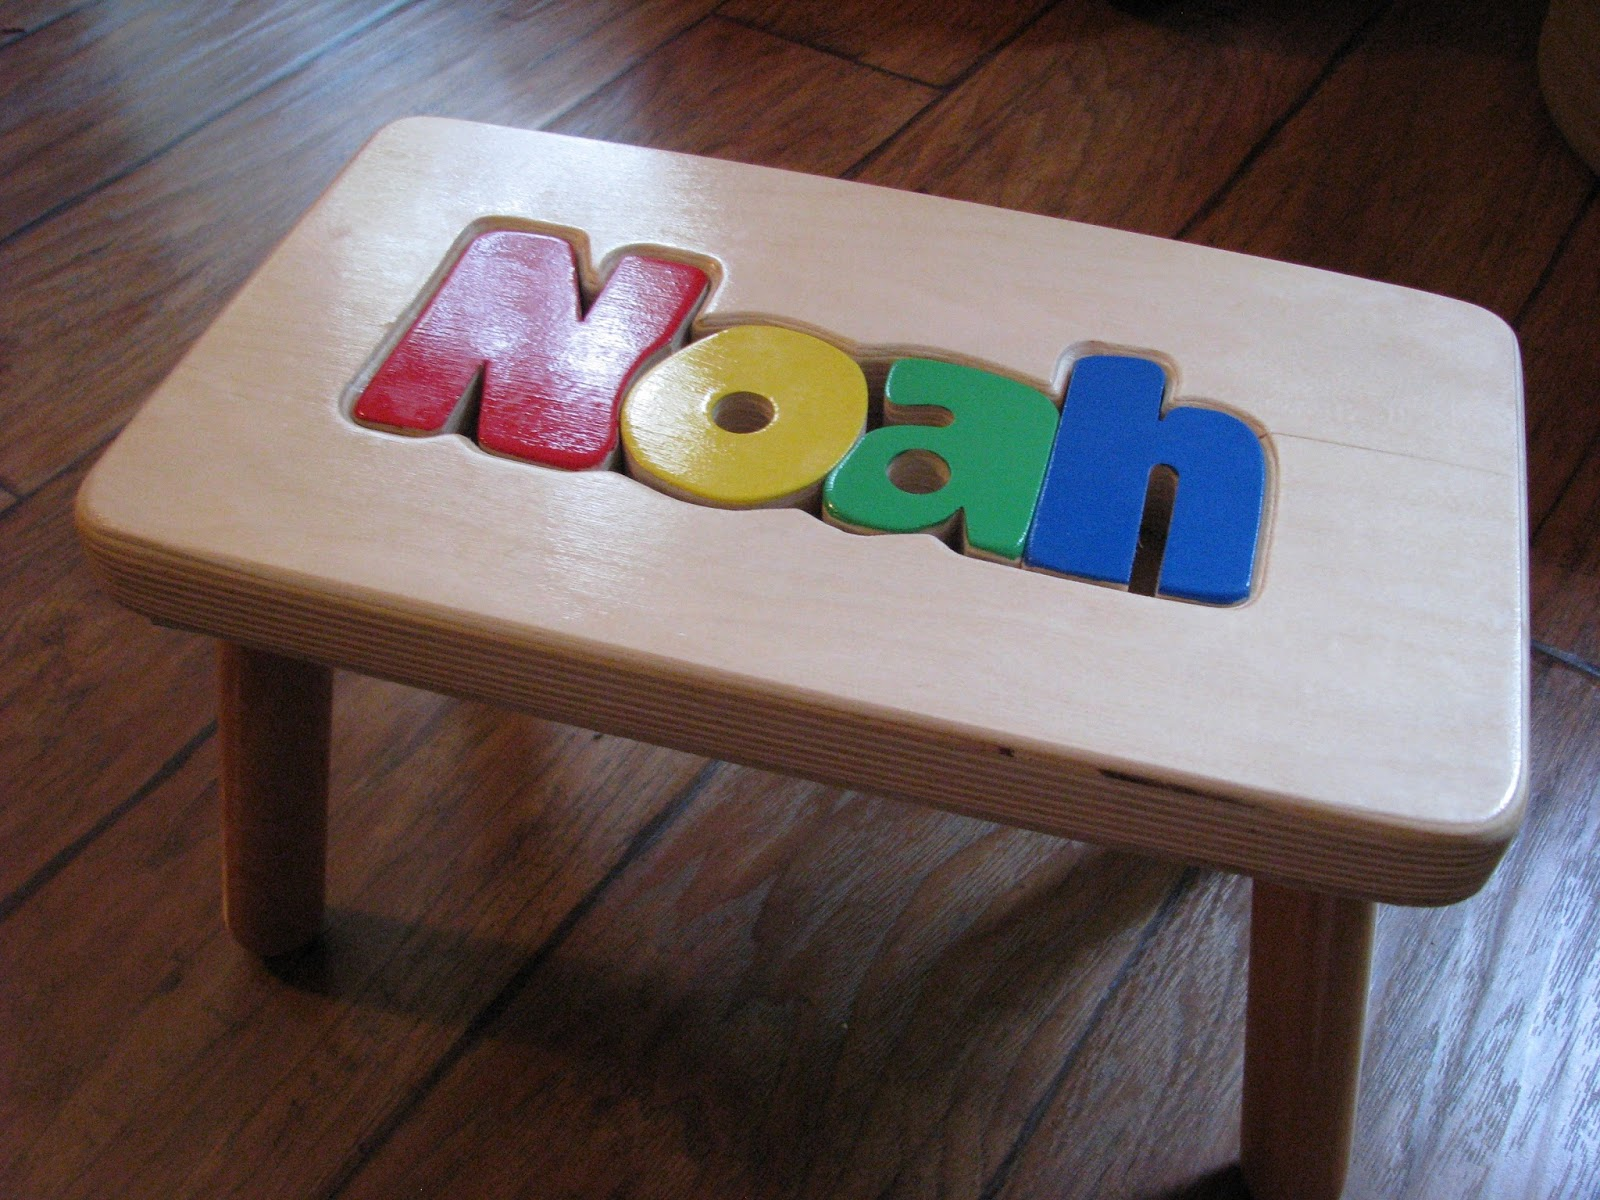 Superb img of  Footsteps: Cubbyhole Personalized Puzzle Stool Review & Giveaway with #214A90 color and 1600x1200 pixels